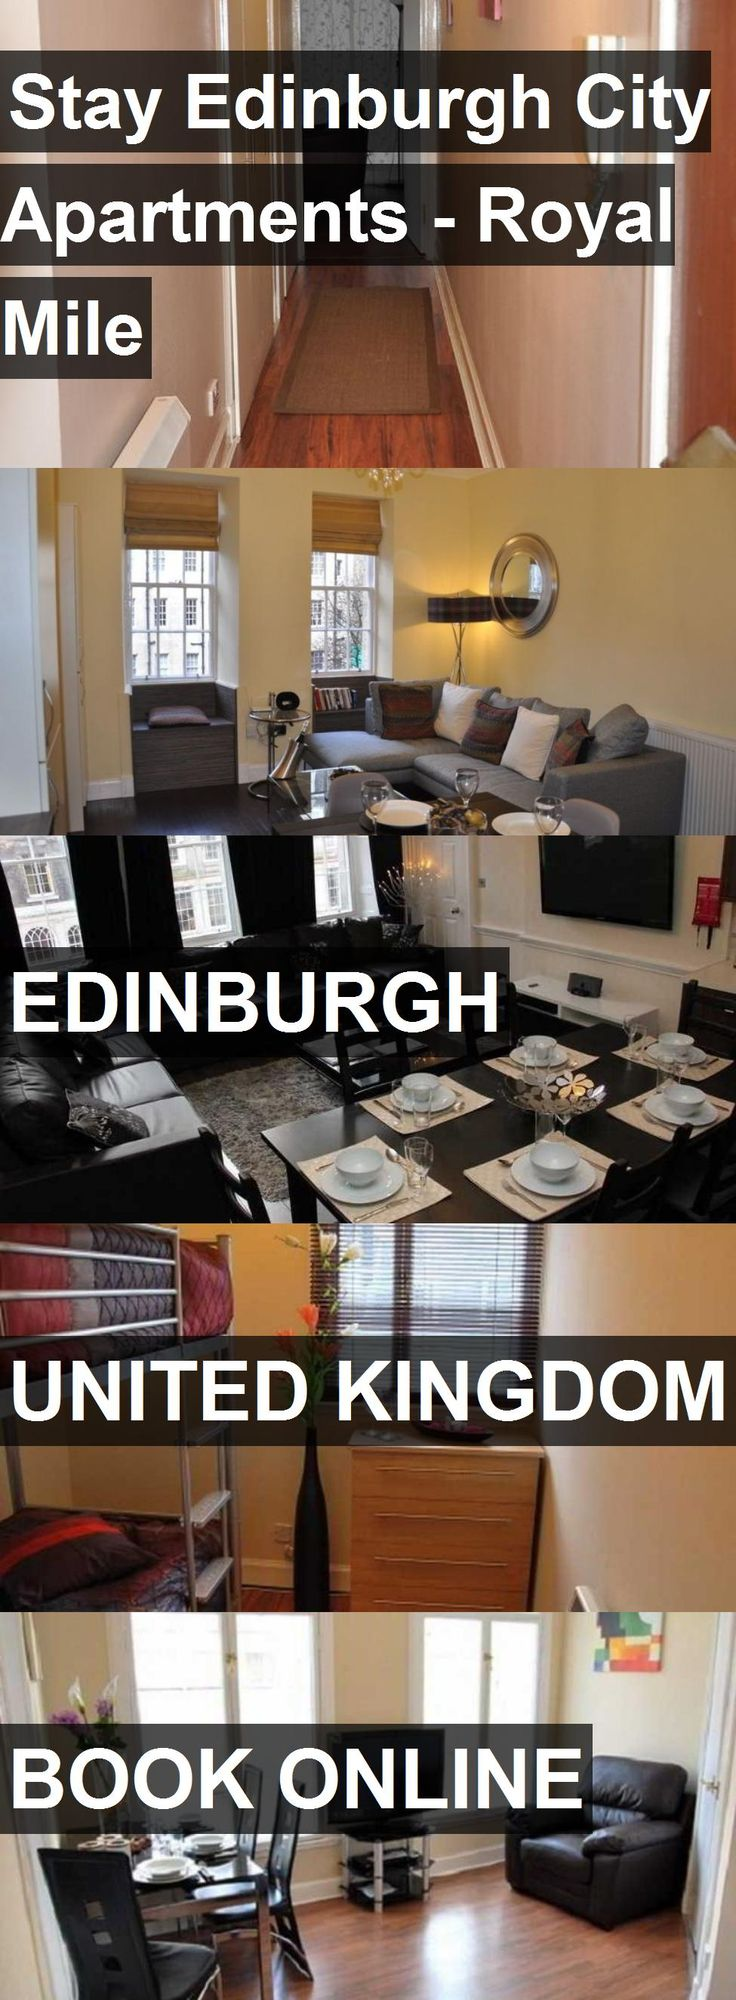 Hotel Stay Edinburgh City Apartments - Royal Mile in Edinburgh, United Kingdom. For more information, photos, reviews and best prices please follow the link. #UnitedKingdom #Edinburgh #StayEdinburghCityApartments-RoyalMile #hotel #travel #vacation